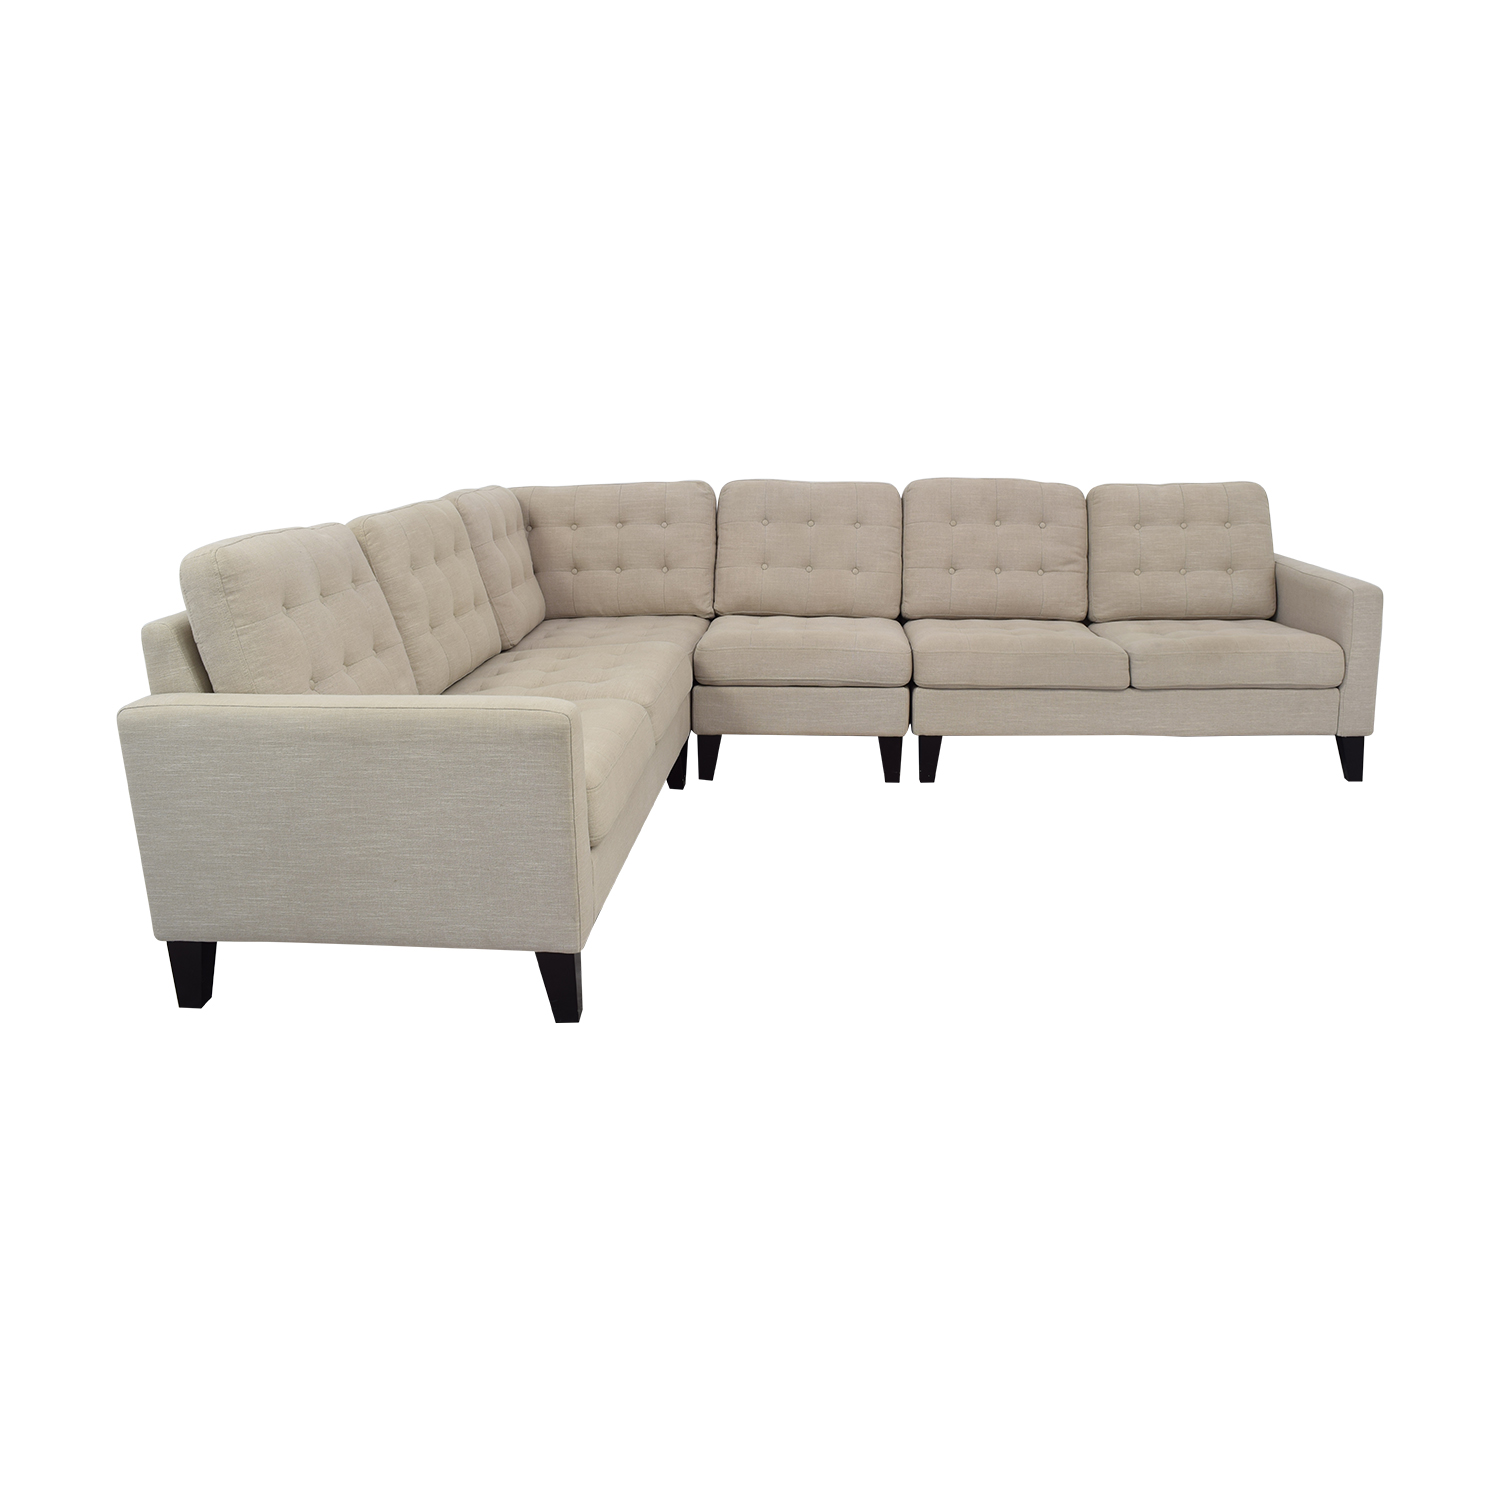 Pier 1 Pier 1 Nyle L-Shaped Sectional Sofa second hand